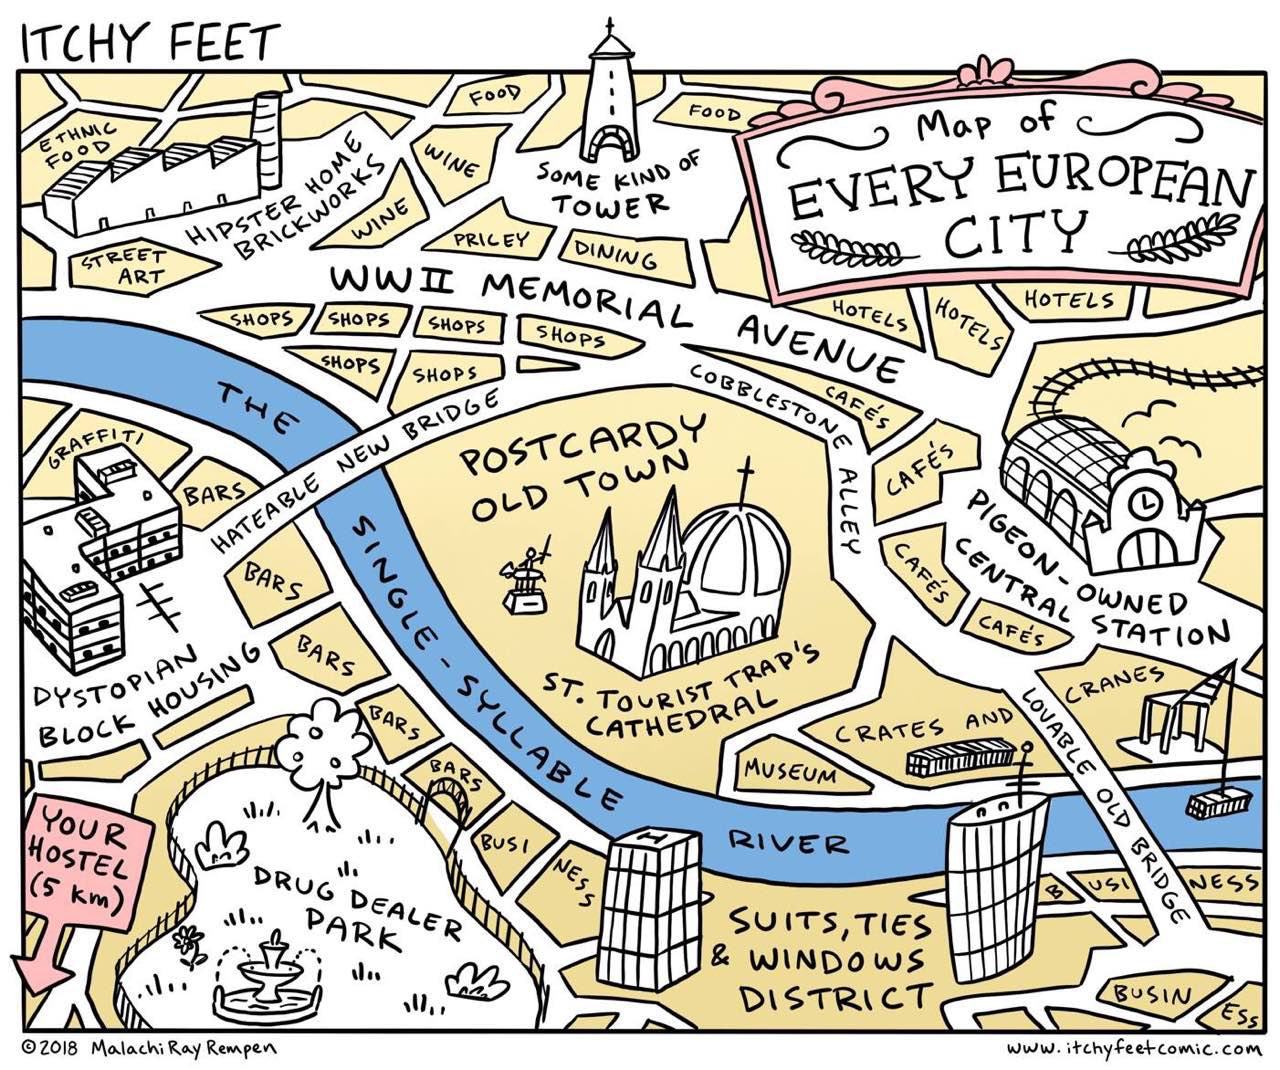 Map of every European city